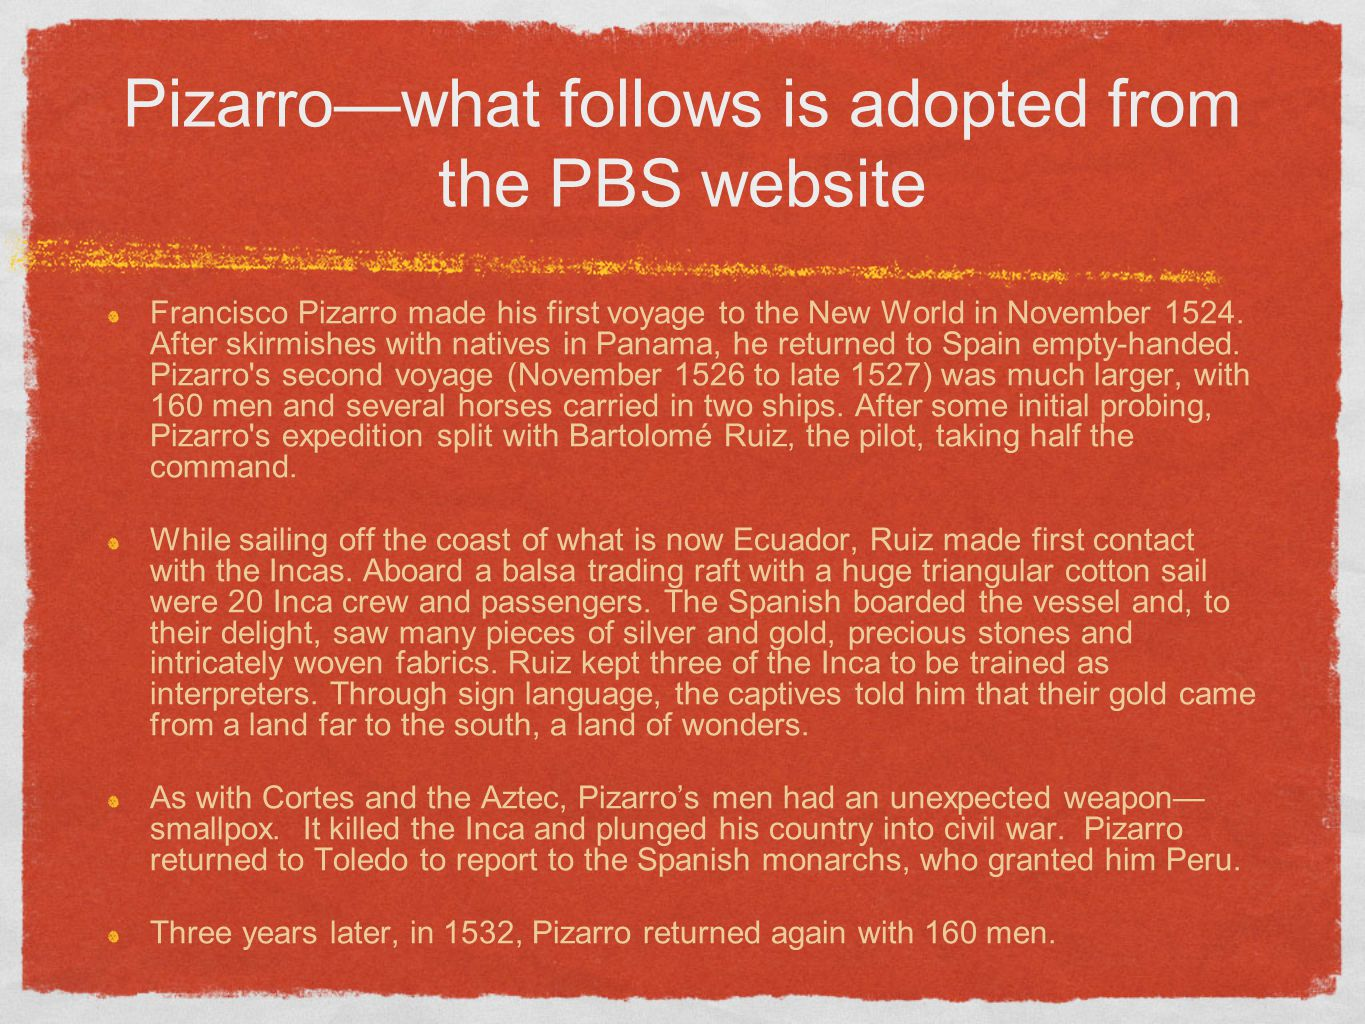 Pizarro—what follows is adopted from the PBS website Francisco Pizarro made his first voyage to the New World in November 1524. After skirmishes with